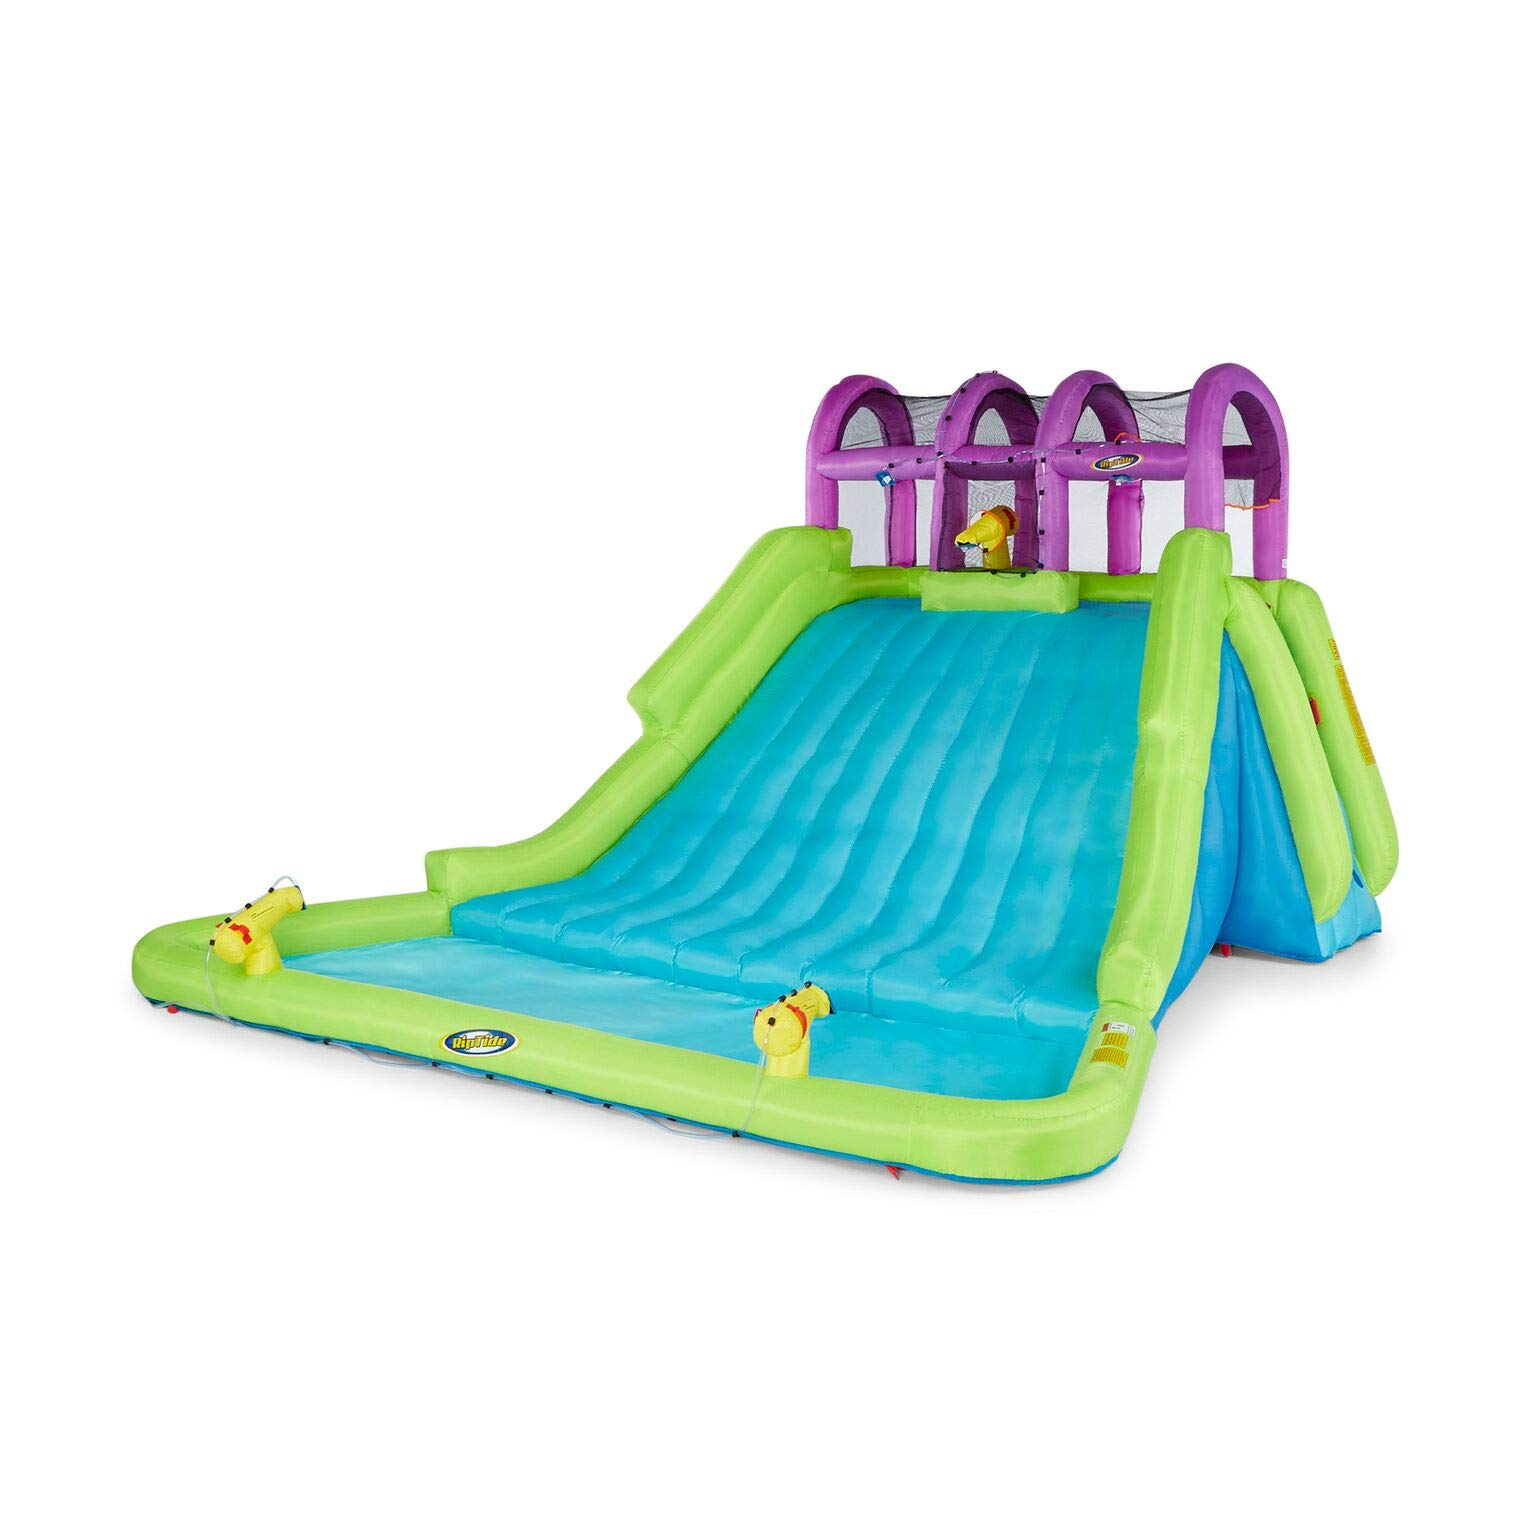 Kahuna Mega Blast Inflatable Backyard Kiddie Pool and Slide Water Park by Kahuna